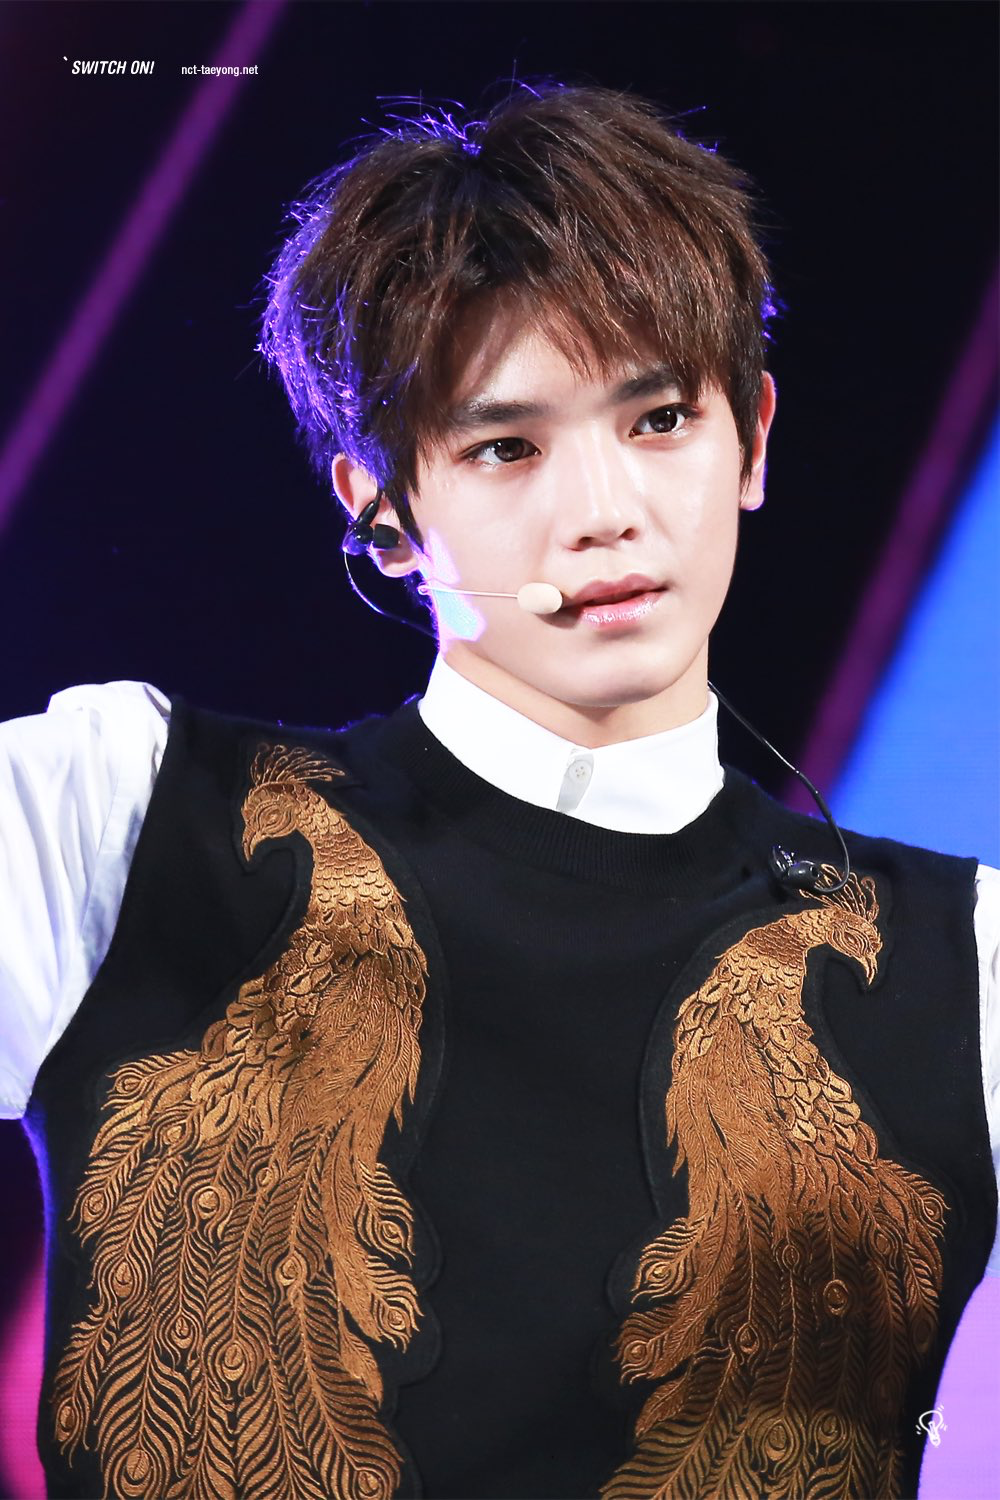 Tries To Look Intimidating But Is Actually A Cutie Inside Pose Nct Taeyong Taeyong Nct